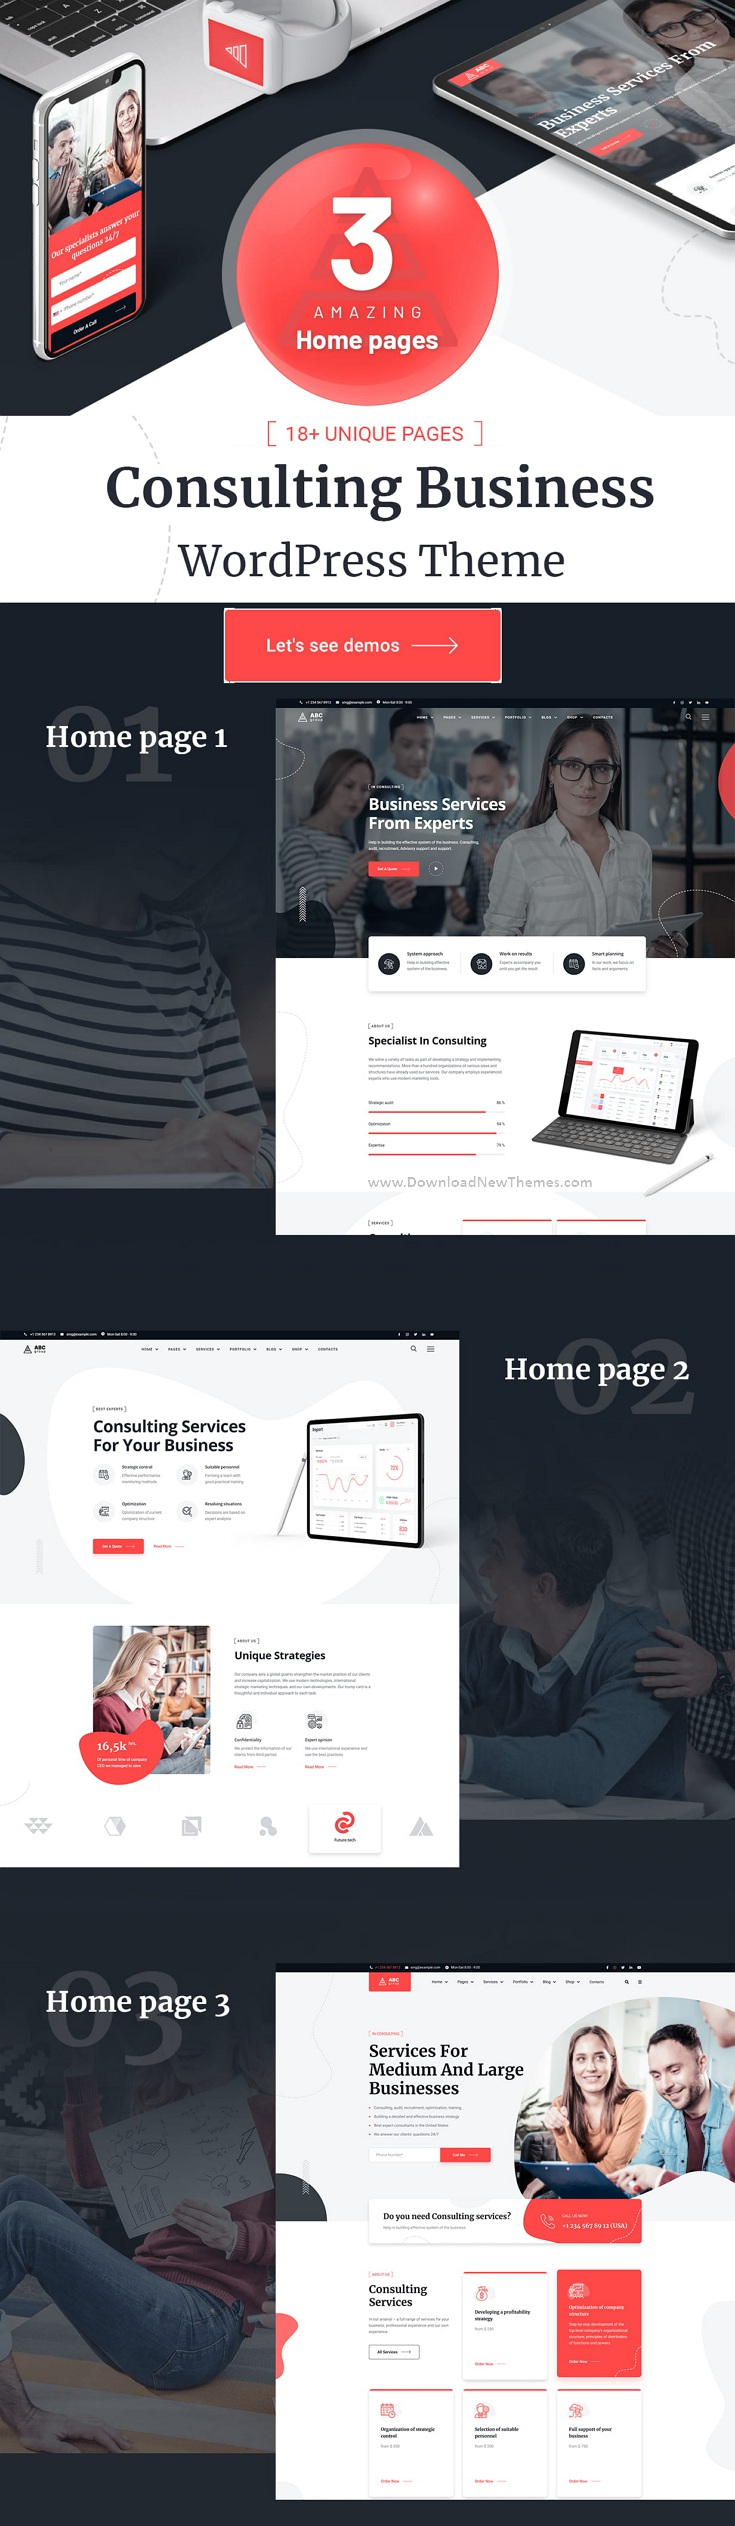 ABCGroup - Consulting Business WordPress Theme